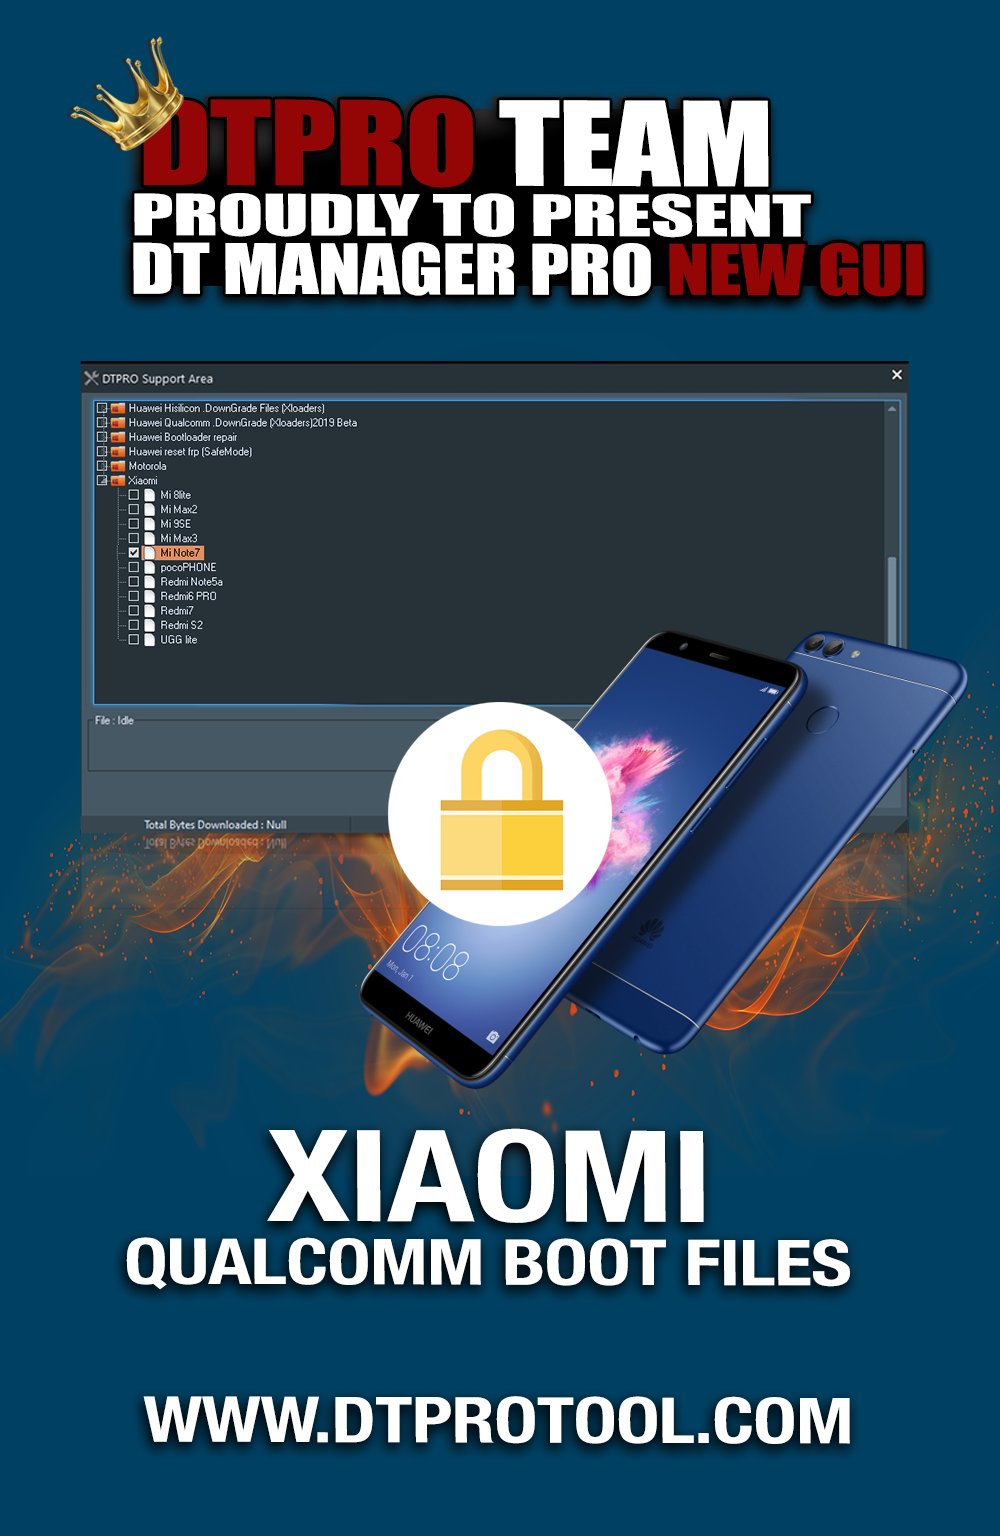 DT MANAGER PRO Tool WhosYourDaddy Edition +New Design V2 reseleased... (2018-2020)DTPRO Team